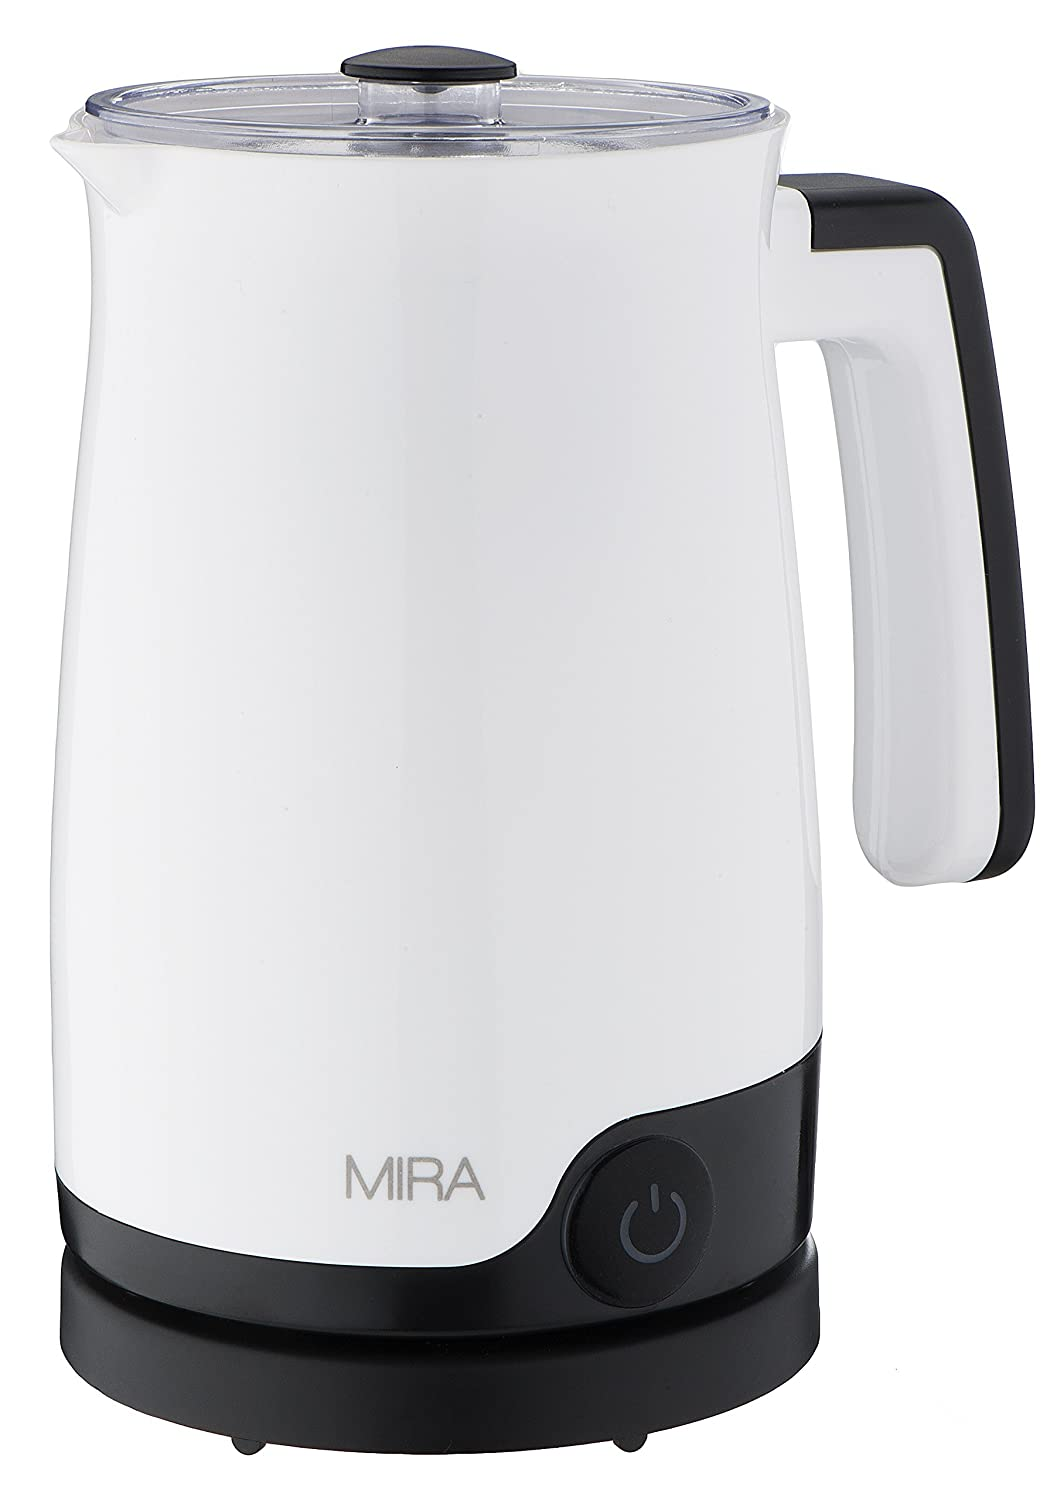 MIRA Automatic One Touch Electric Milk Frother, Warmer, Foam Maker